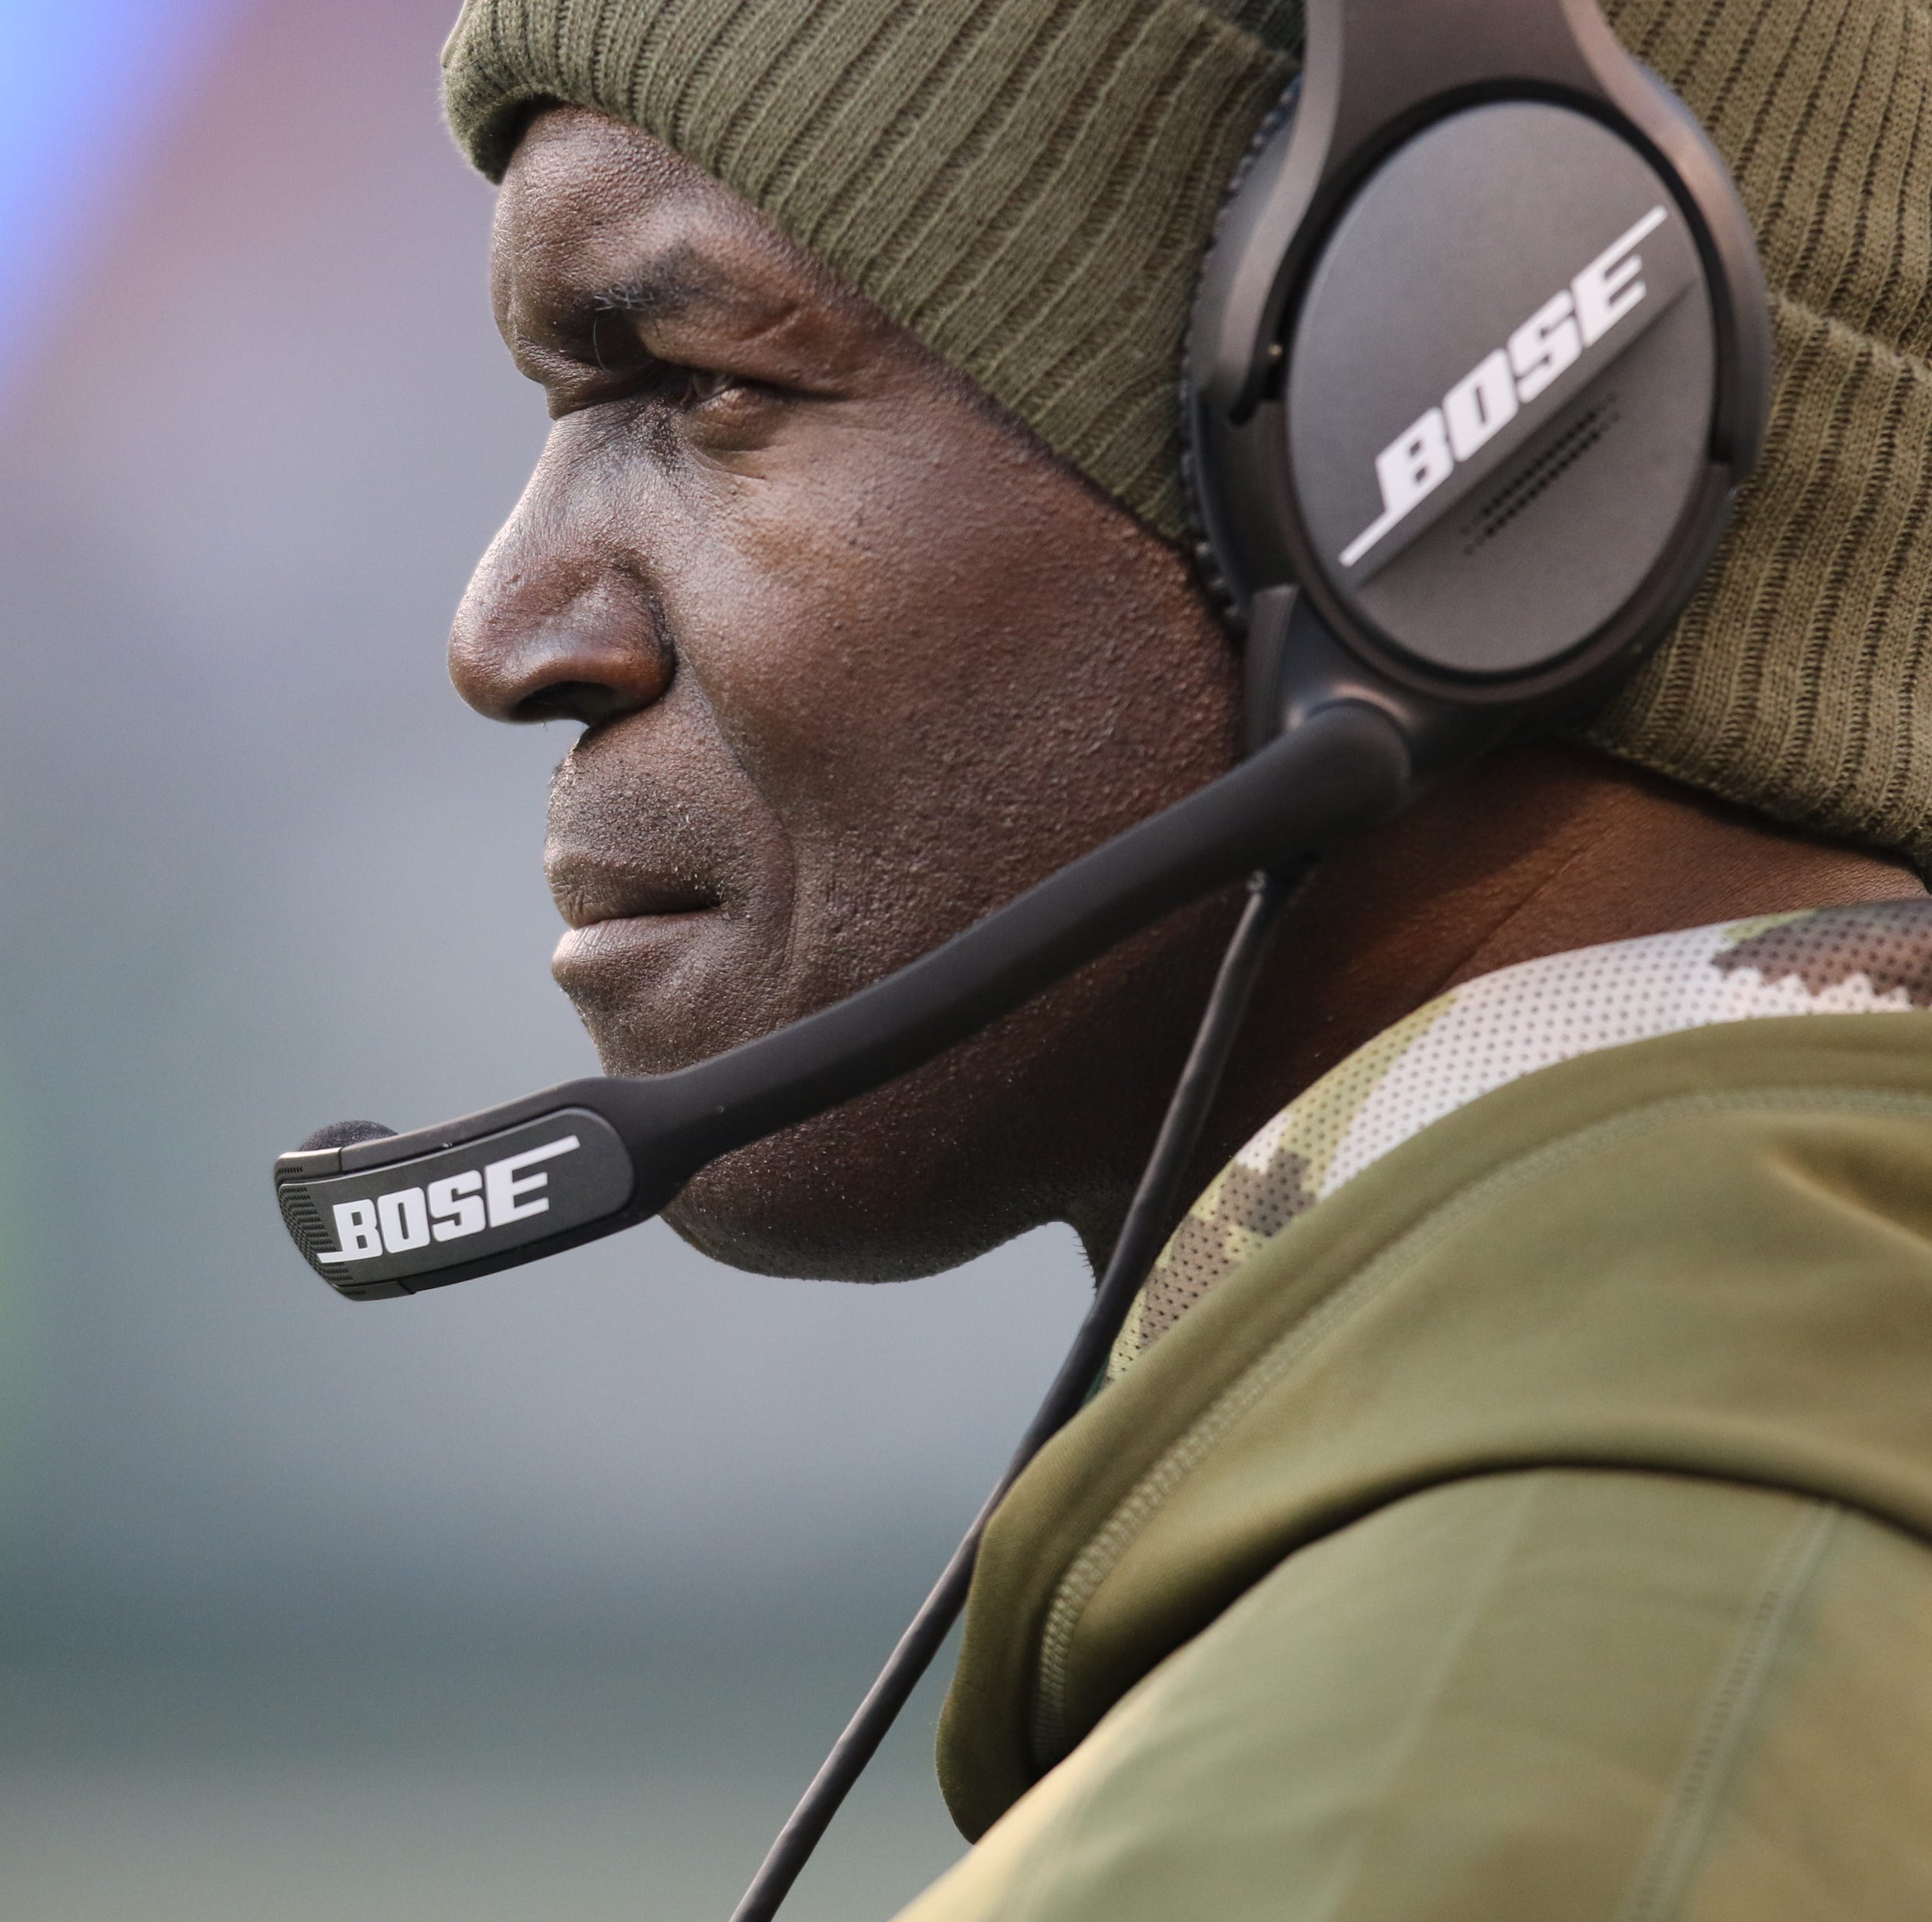 NY Jets ready to 'fight' in final six games, but fixing problems will take more than that